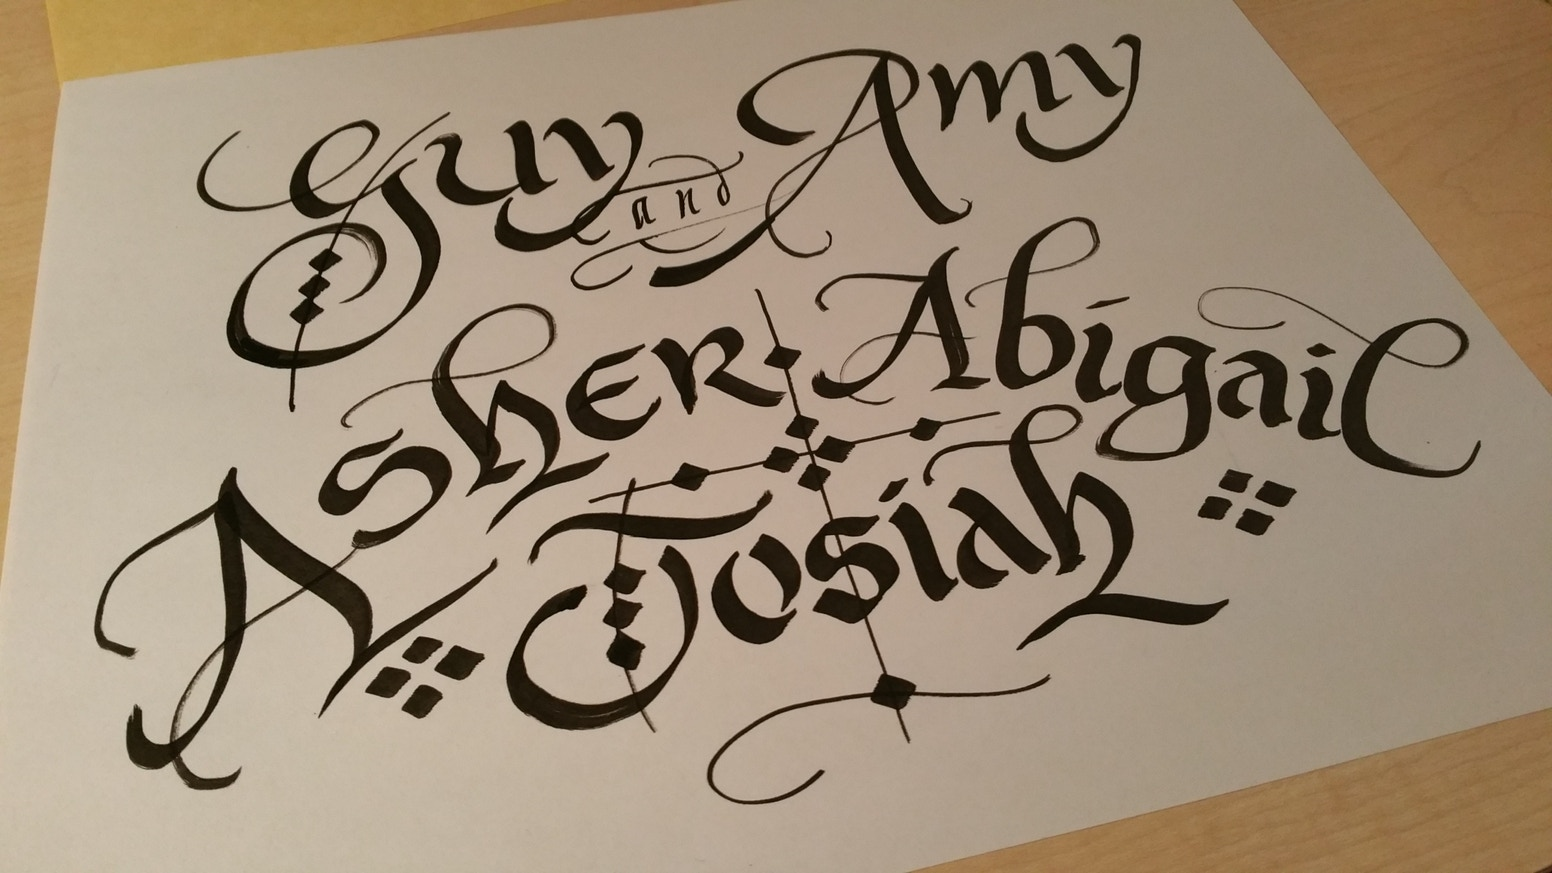 100 Hand Lettered Digital Calligraphy By Carl Naples